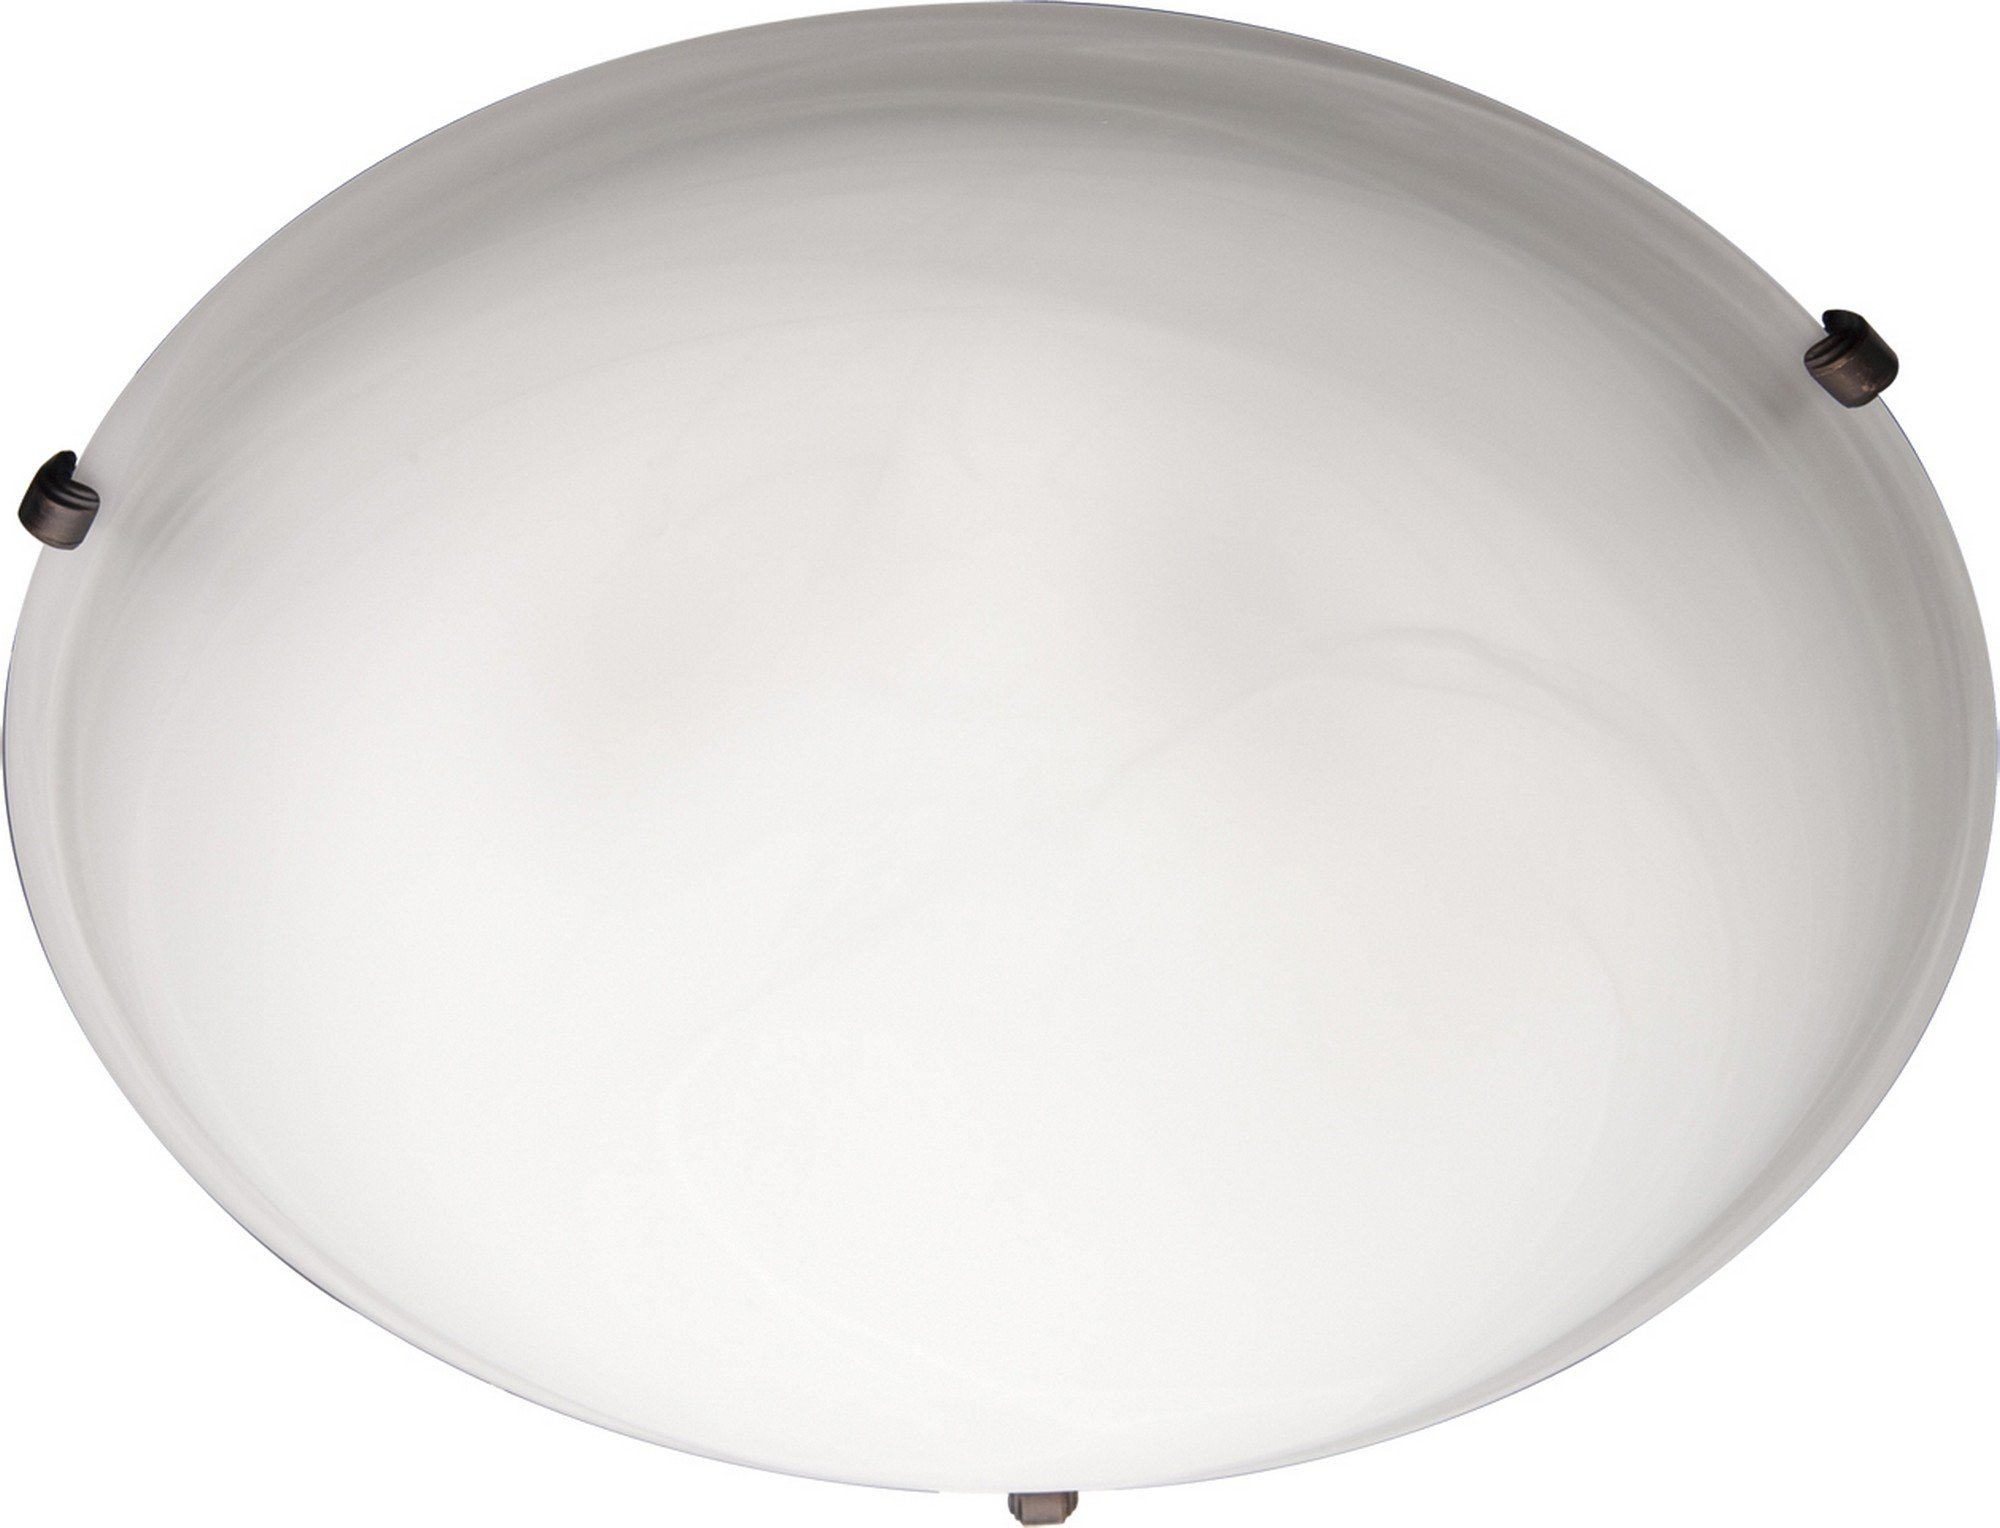 Maxim 2680MROI Malaga 2-Light Flush Mount, Oil Rubbed Bronze Finish, Marble Glass, MB Incandescent Incandescent Bulb, 60W Max, Dry Safety Rating, Standard Dimmable, Glass Shade Material, Rated Lumens